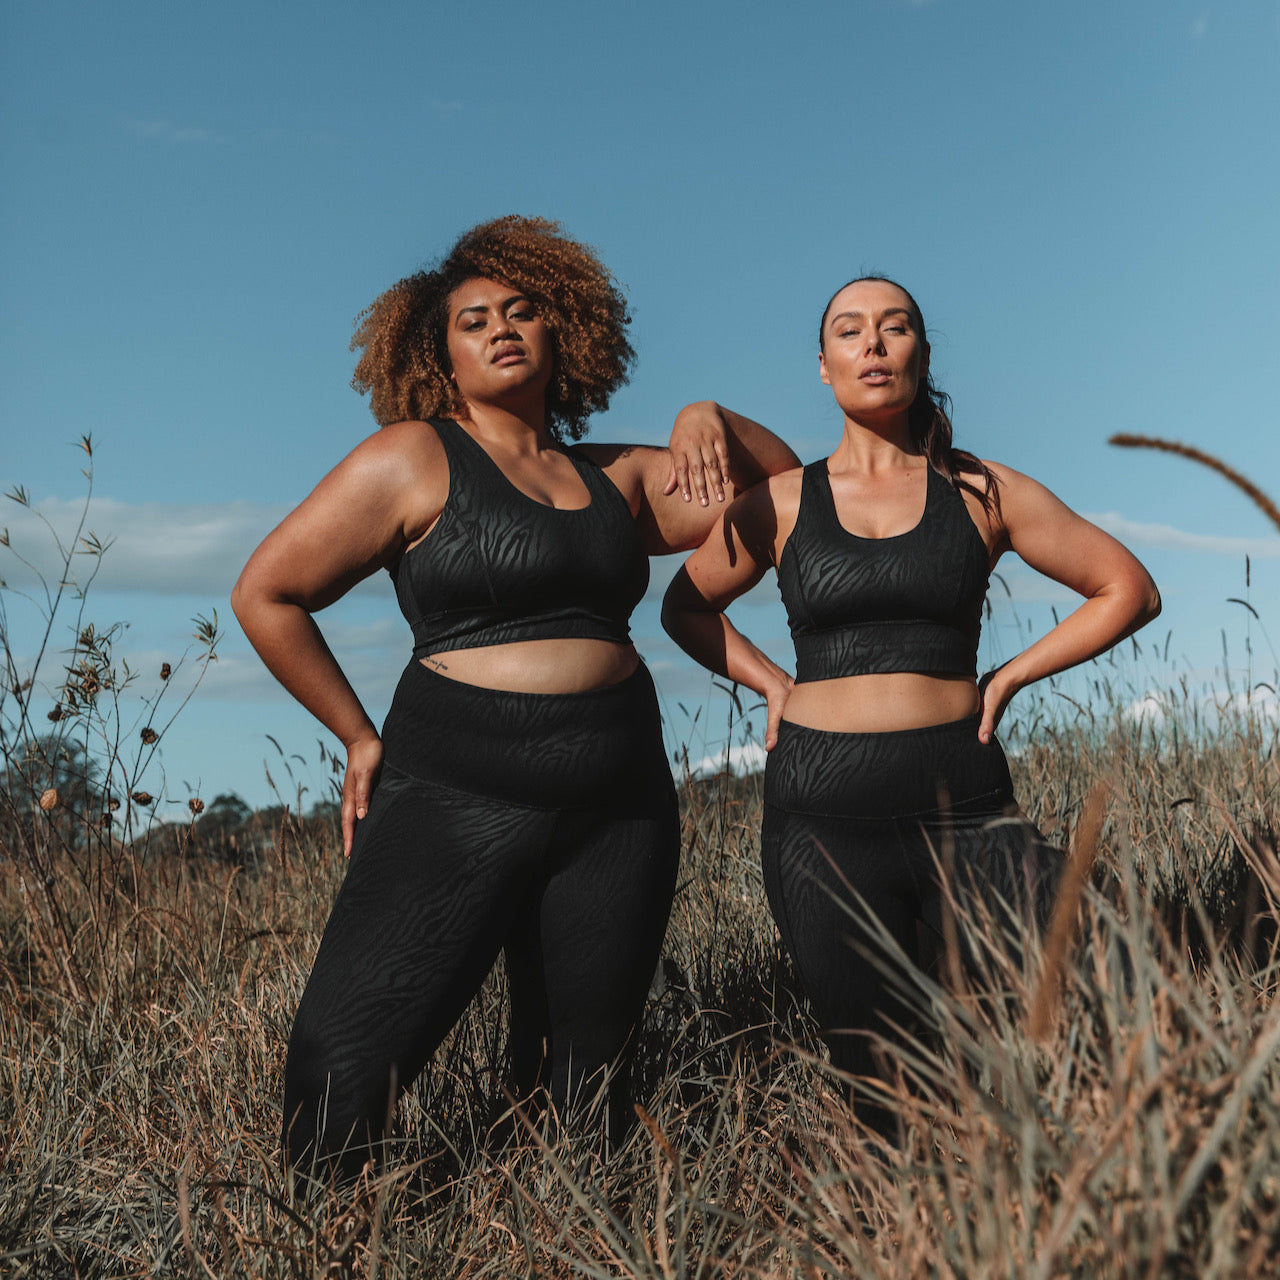 Two models wearing black workout sets from Active Truth in a field setting.